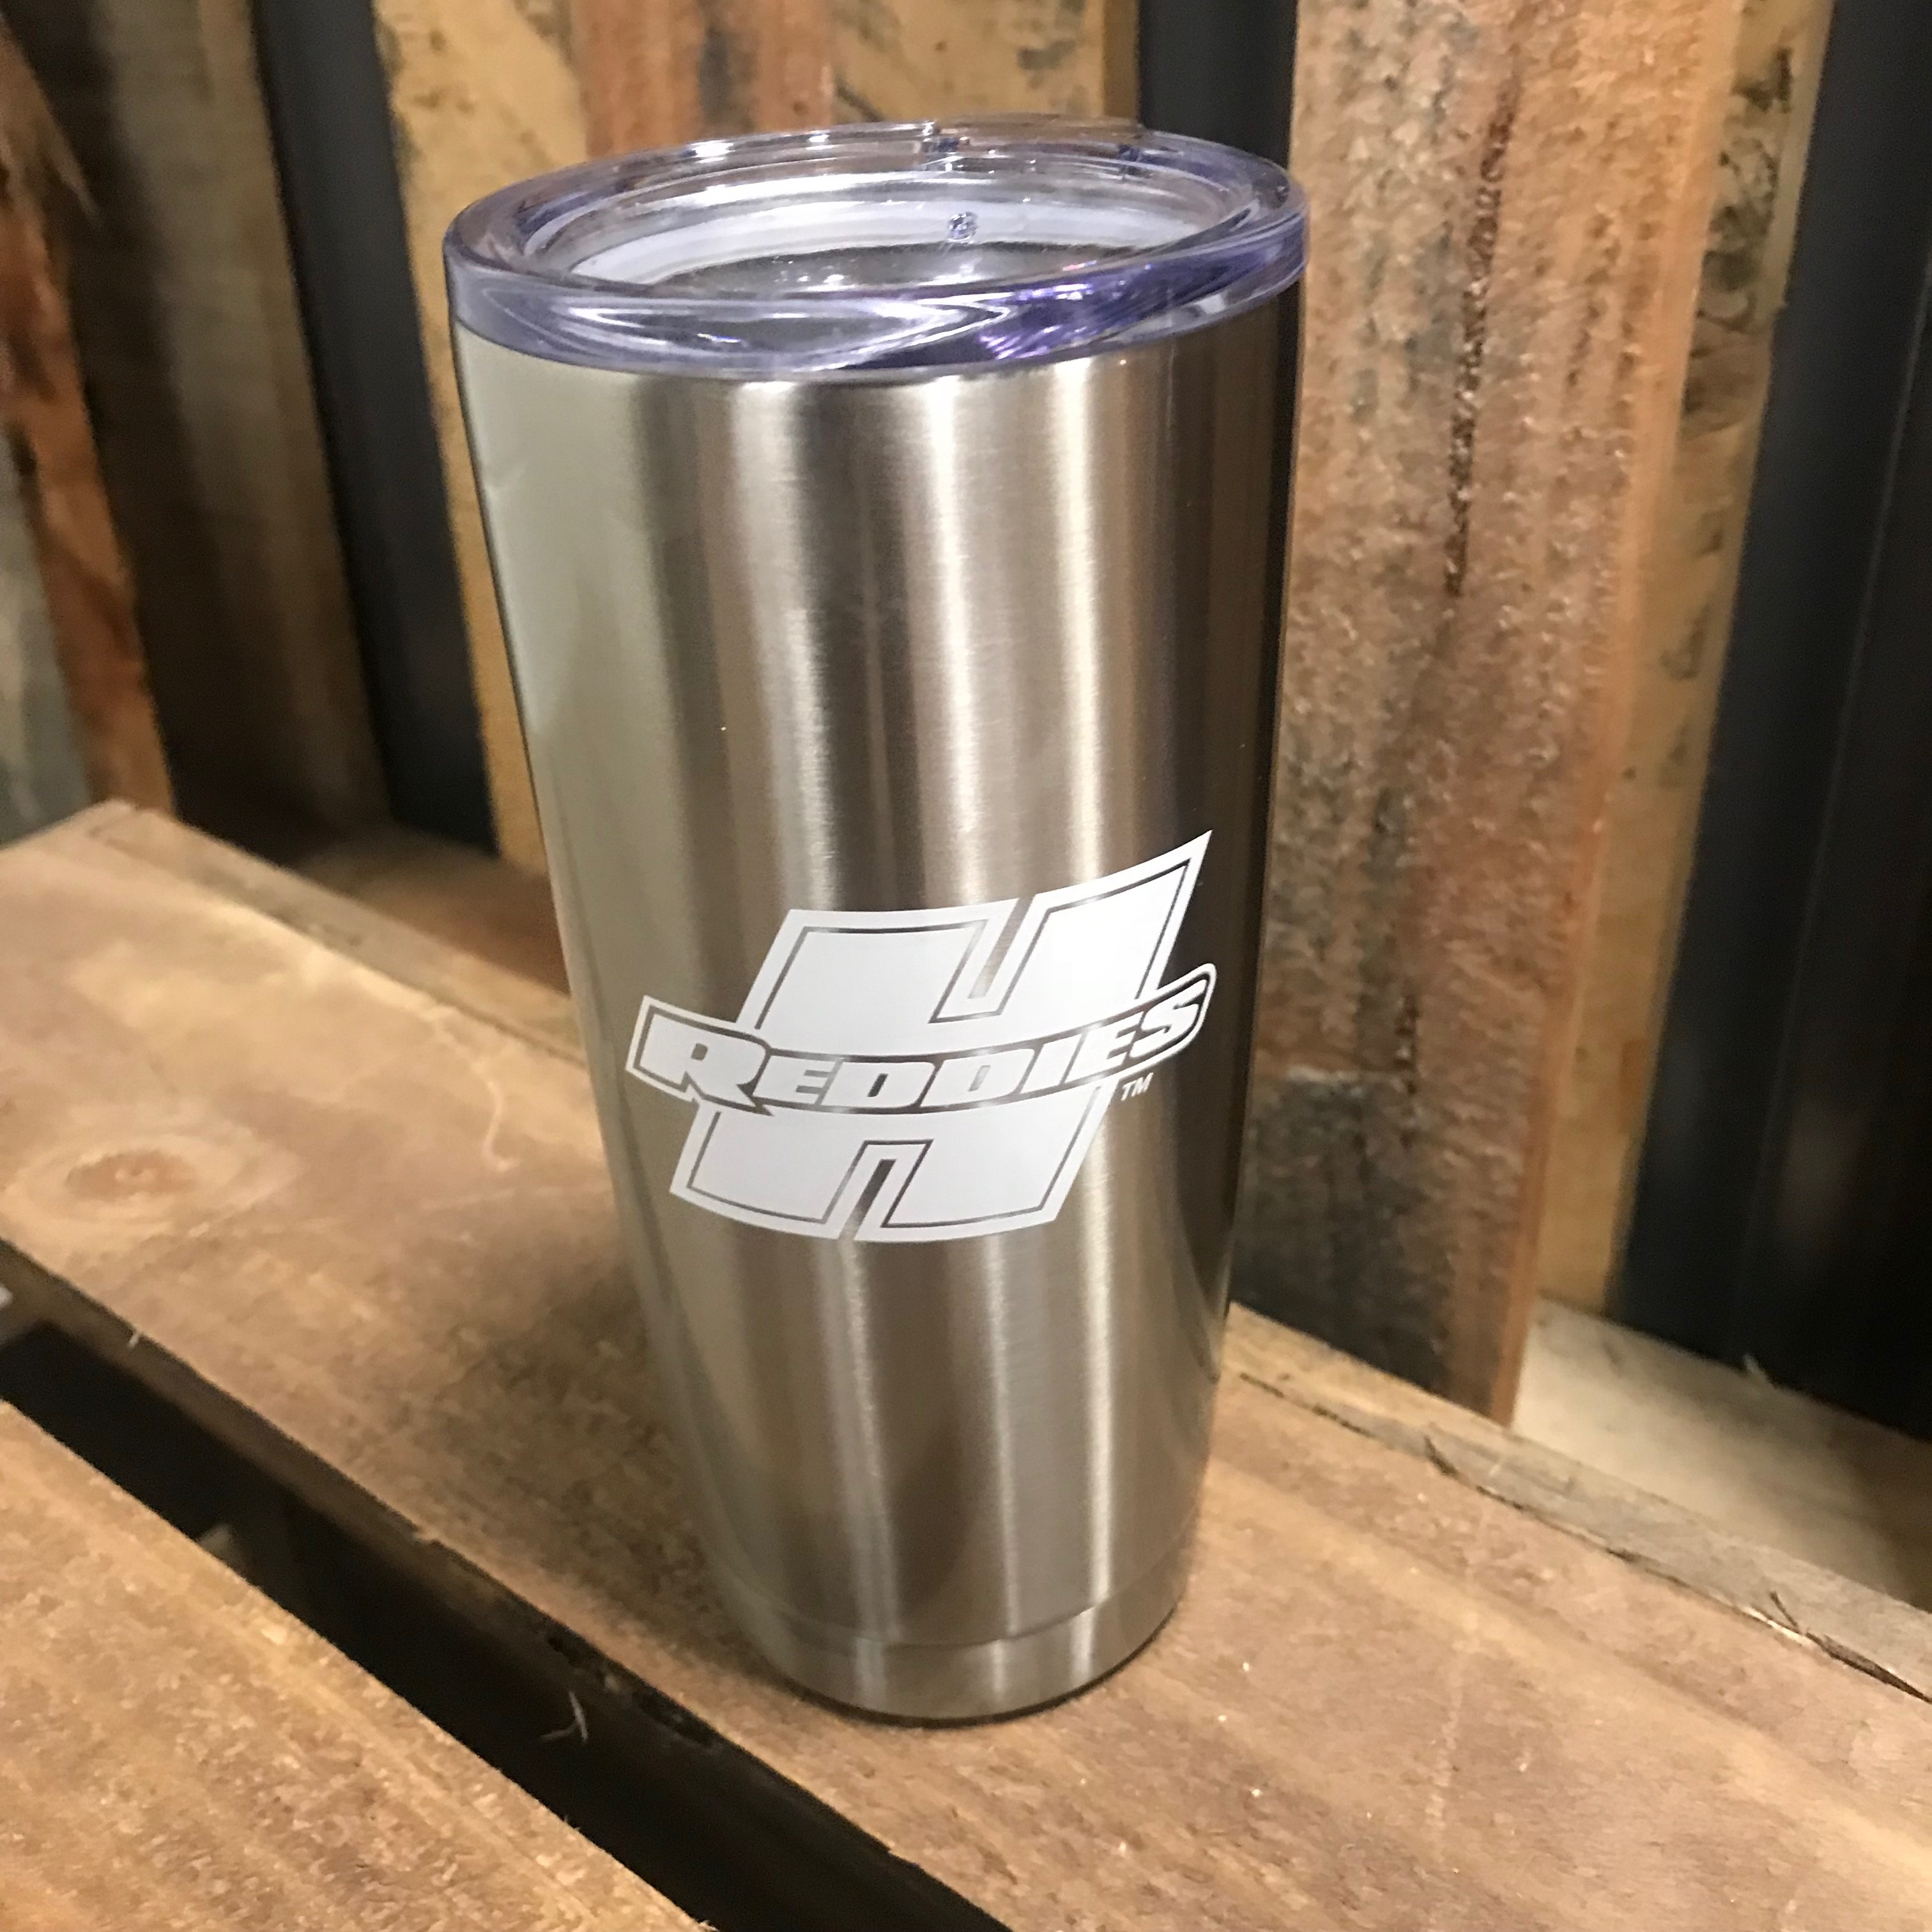 Hreddies Stainless Steal Cup